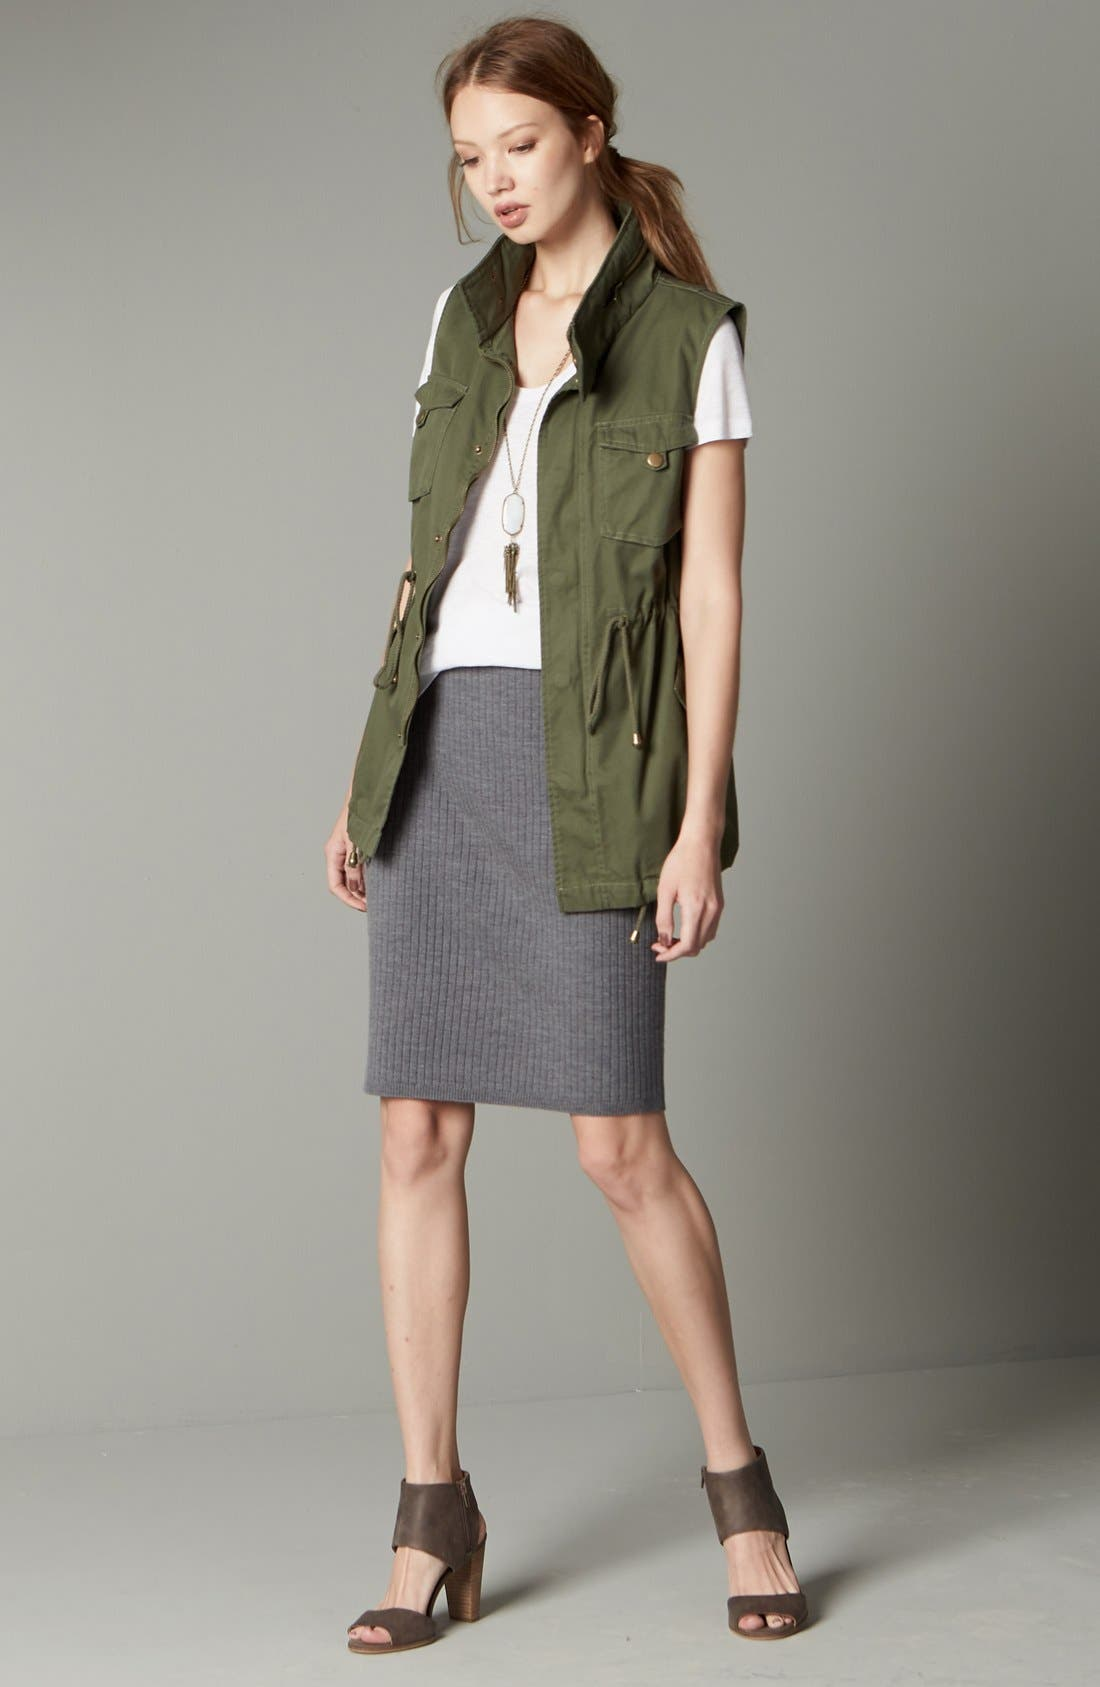 Pleione Vest, Caslon® Tee & Halogen® Skirt Outfit with Accessories